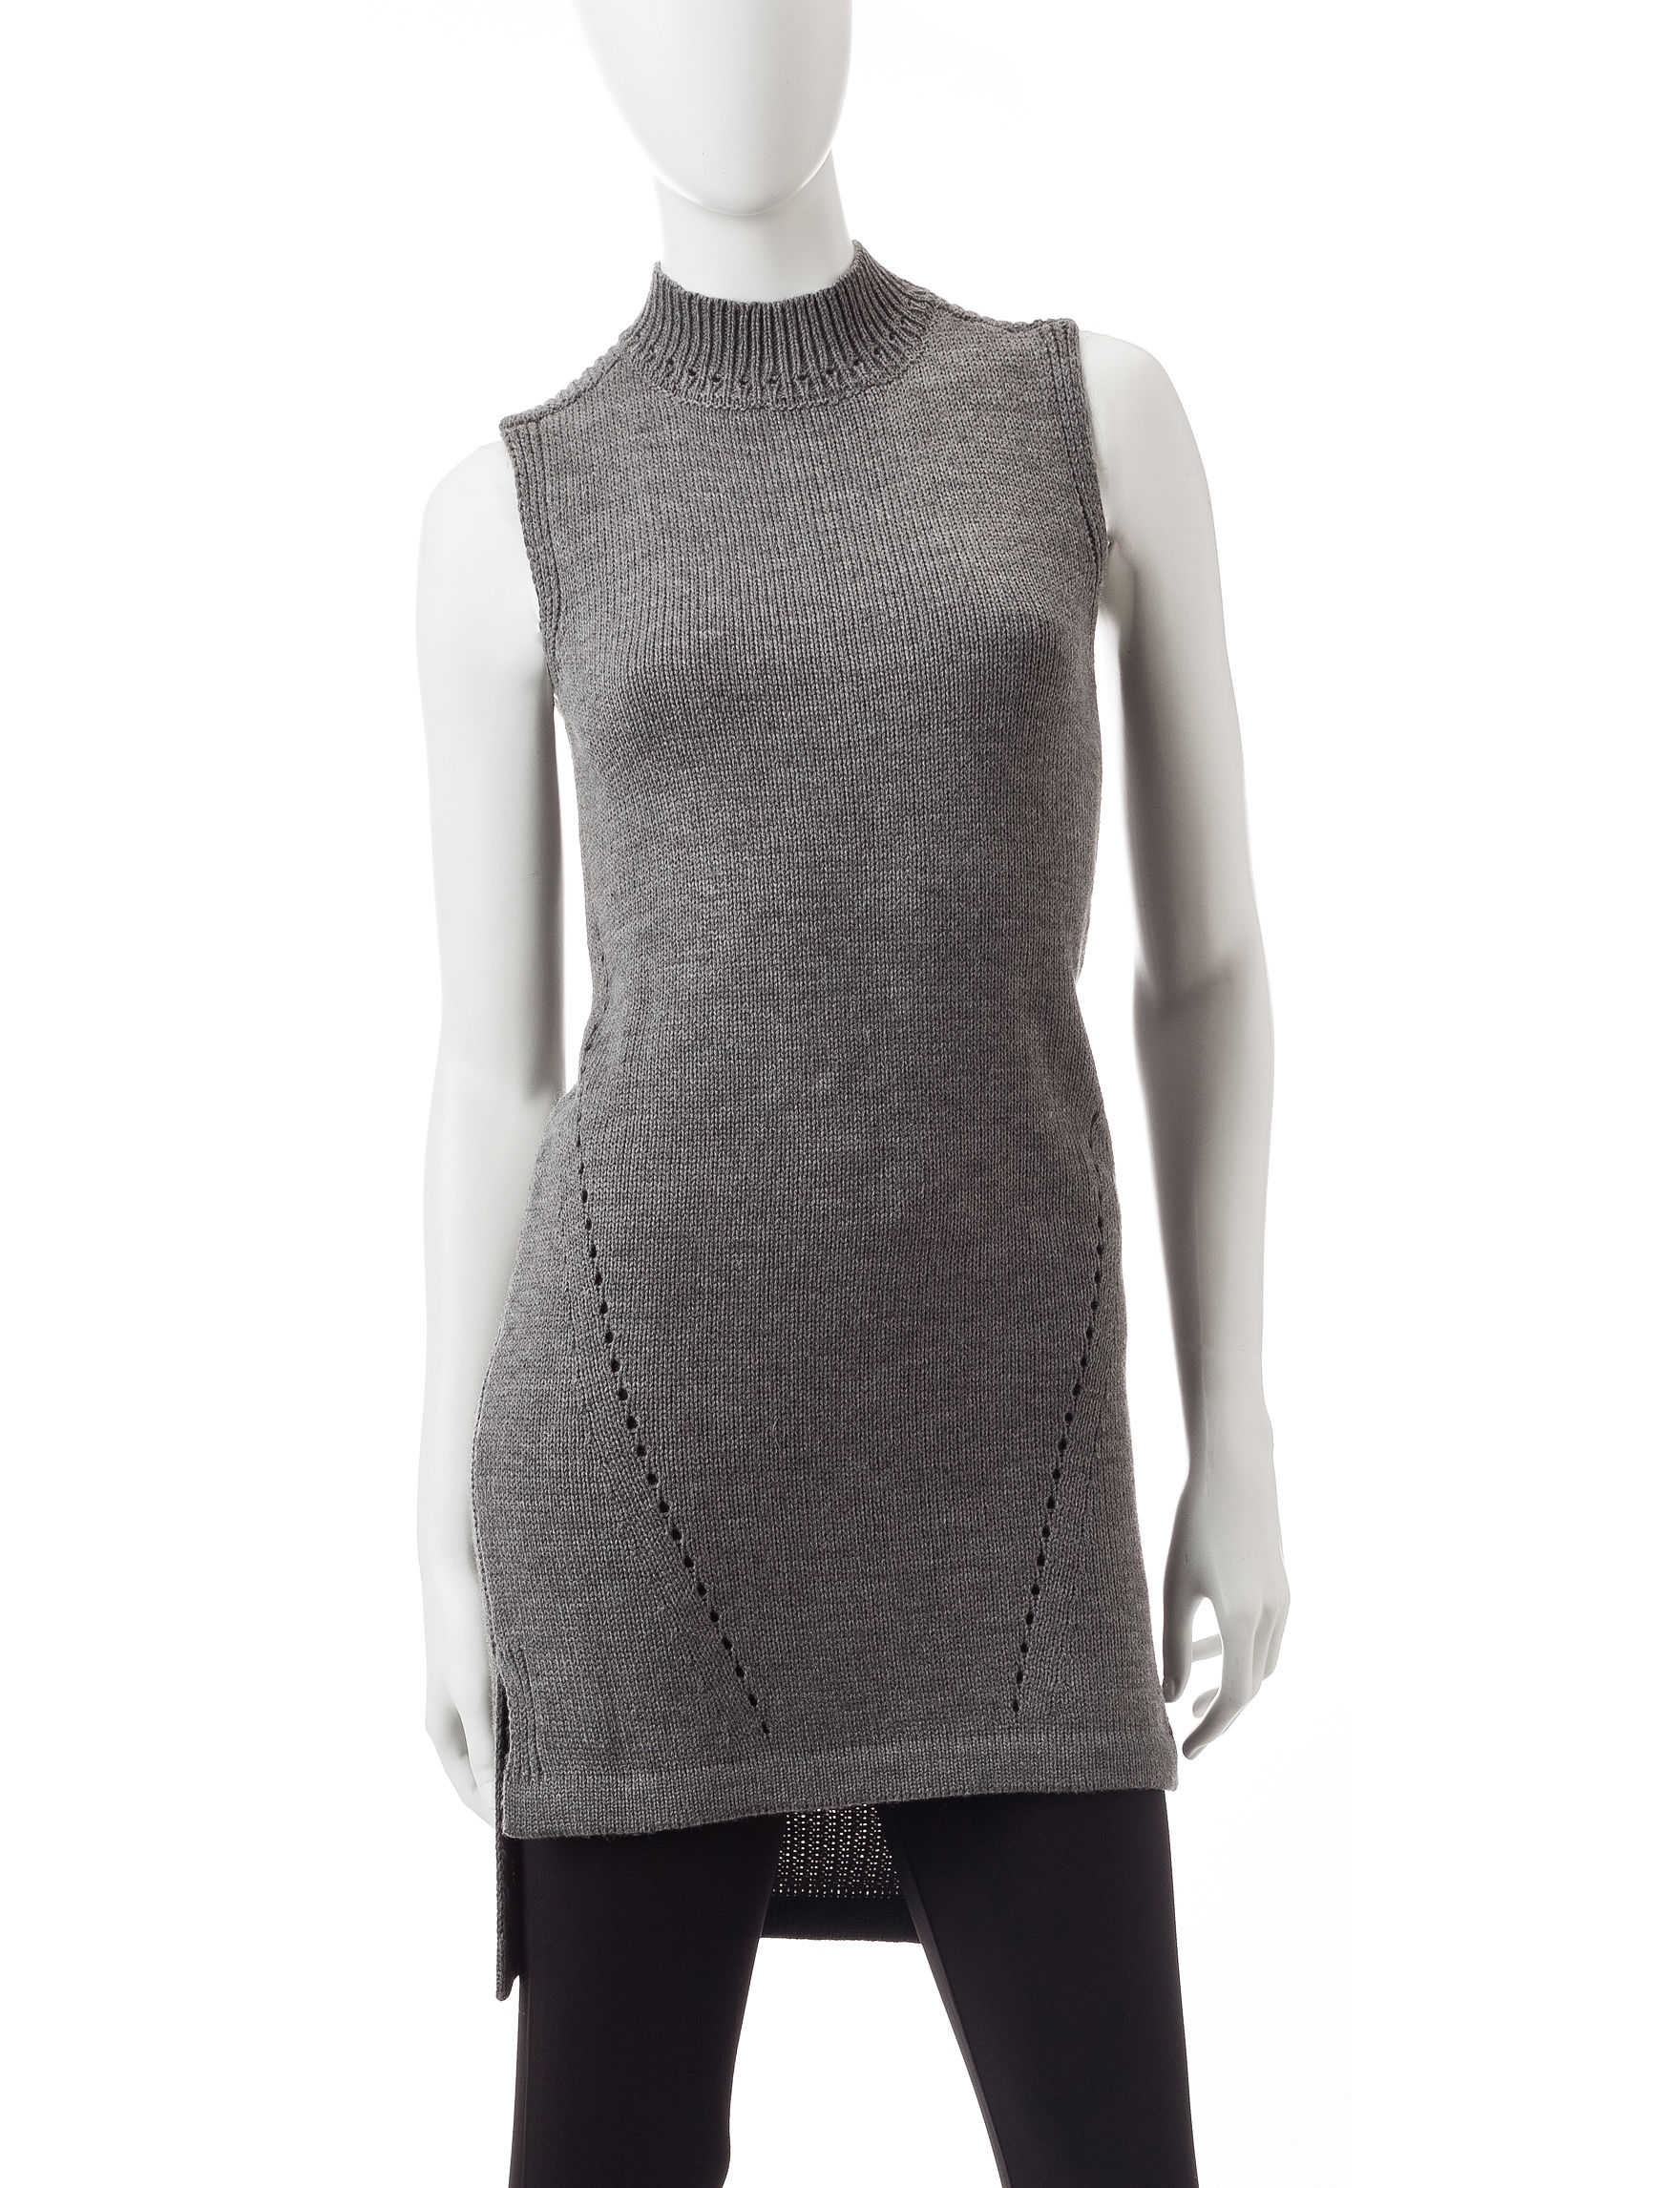 Made for Me to Look Amazing Dark Heather Grey Sweaters Tunics